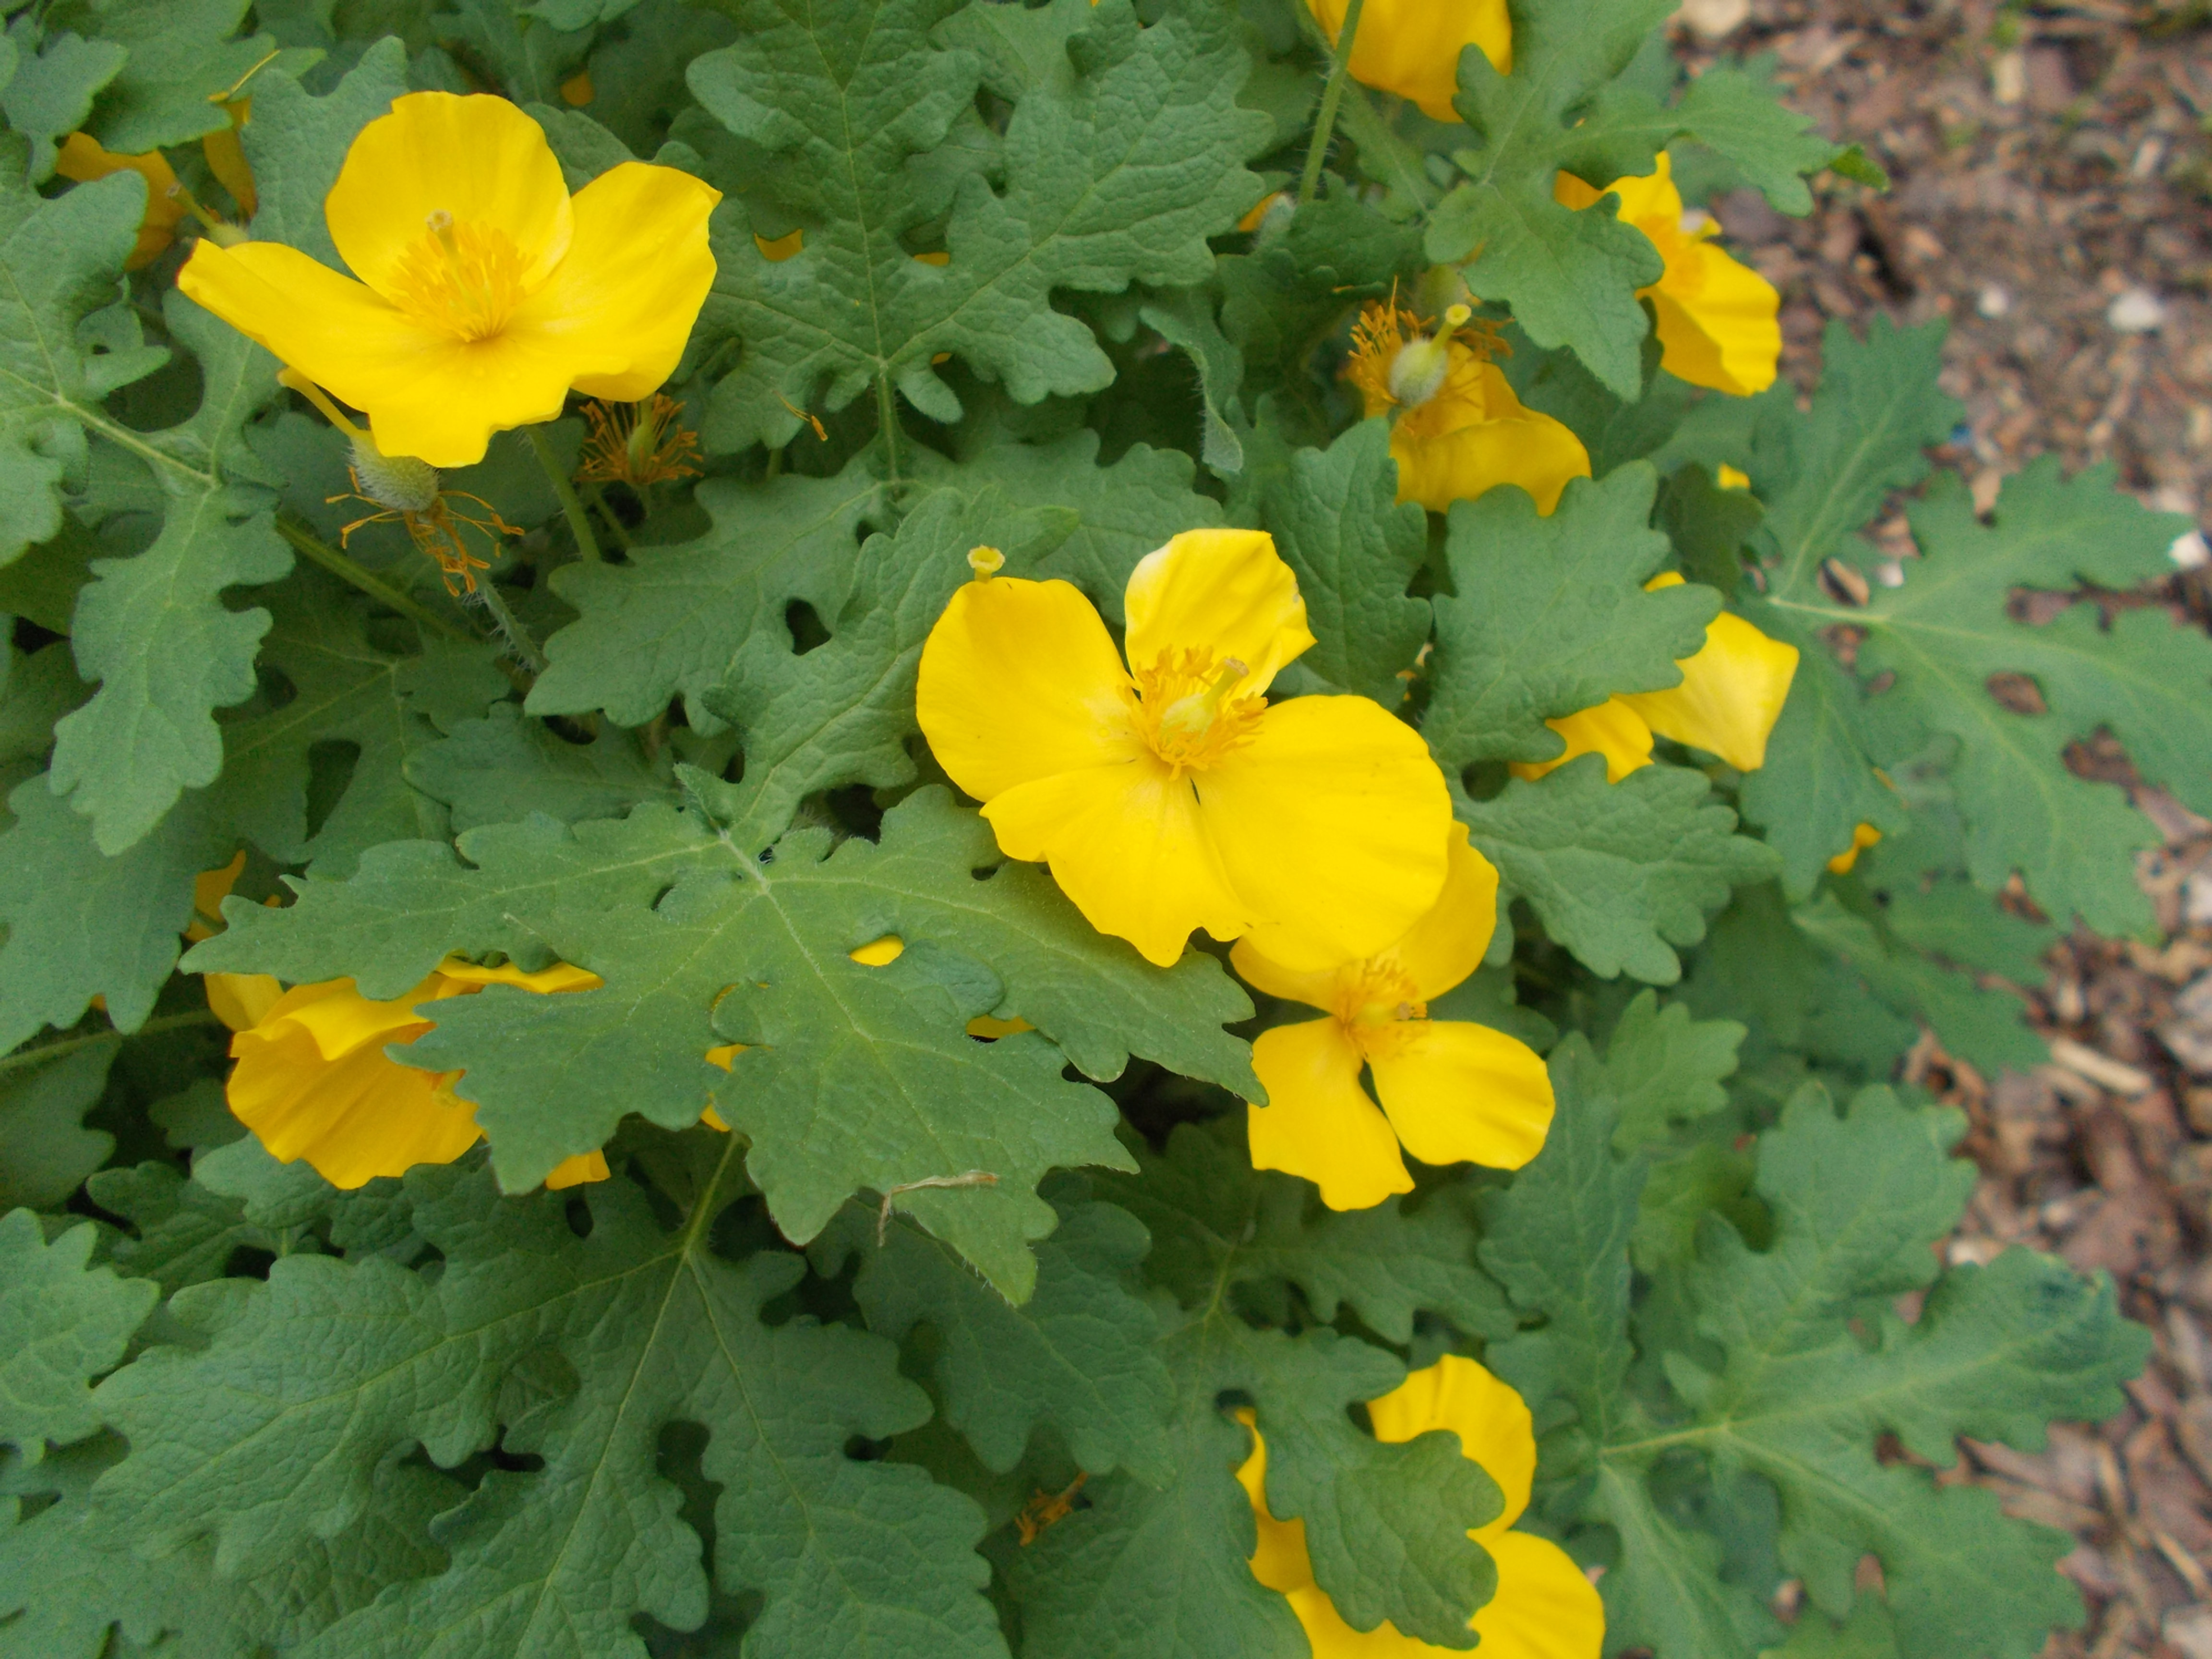 Amandas garden stylophorum diphyllum yellow wood poppy yellow wood poppy is such a cheery sight in the garden after a long winter the bright yellow flowers add a bold color statement to the garden mightylinksfo Choice Image